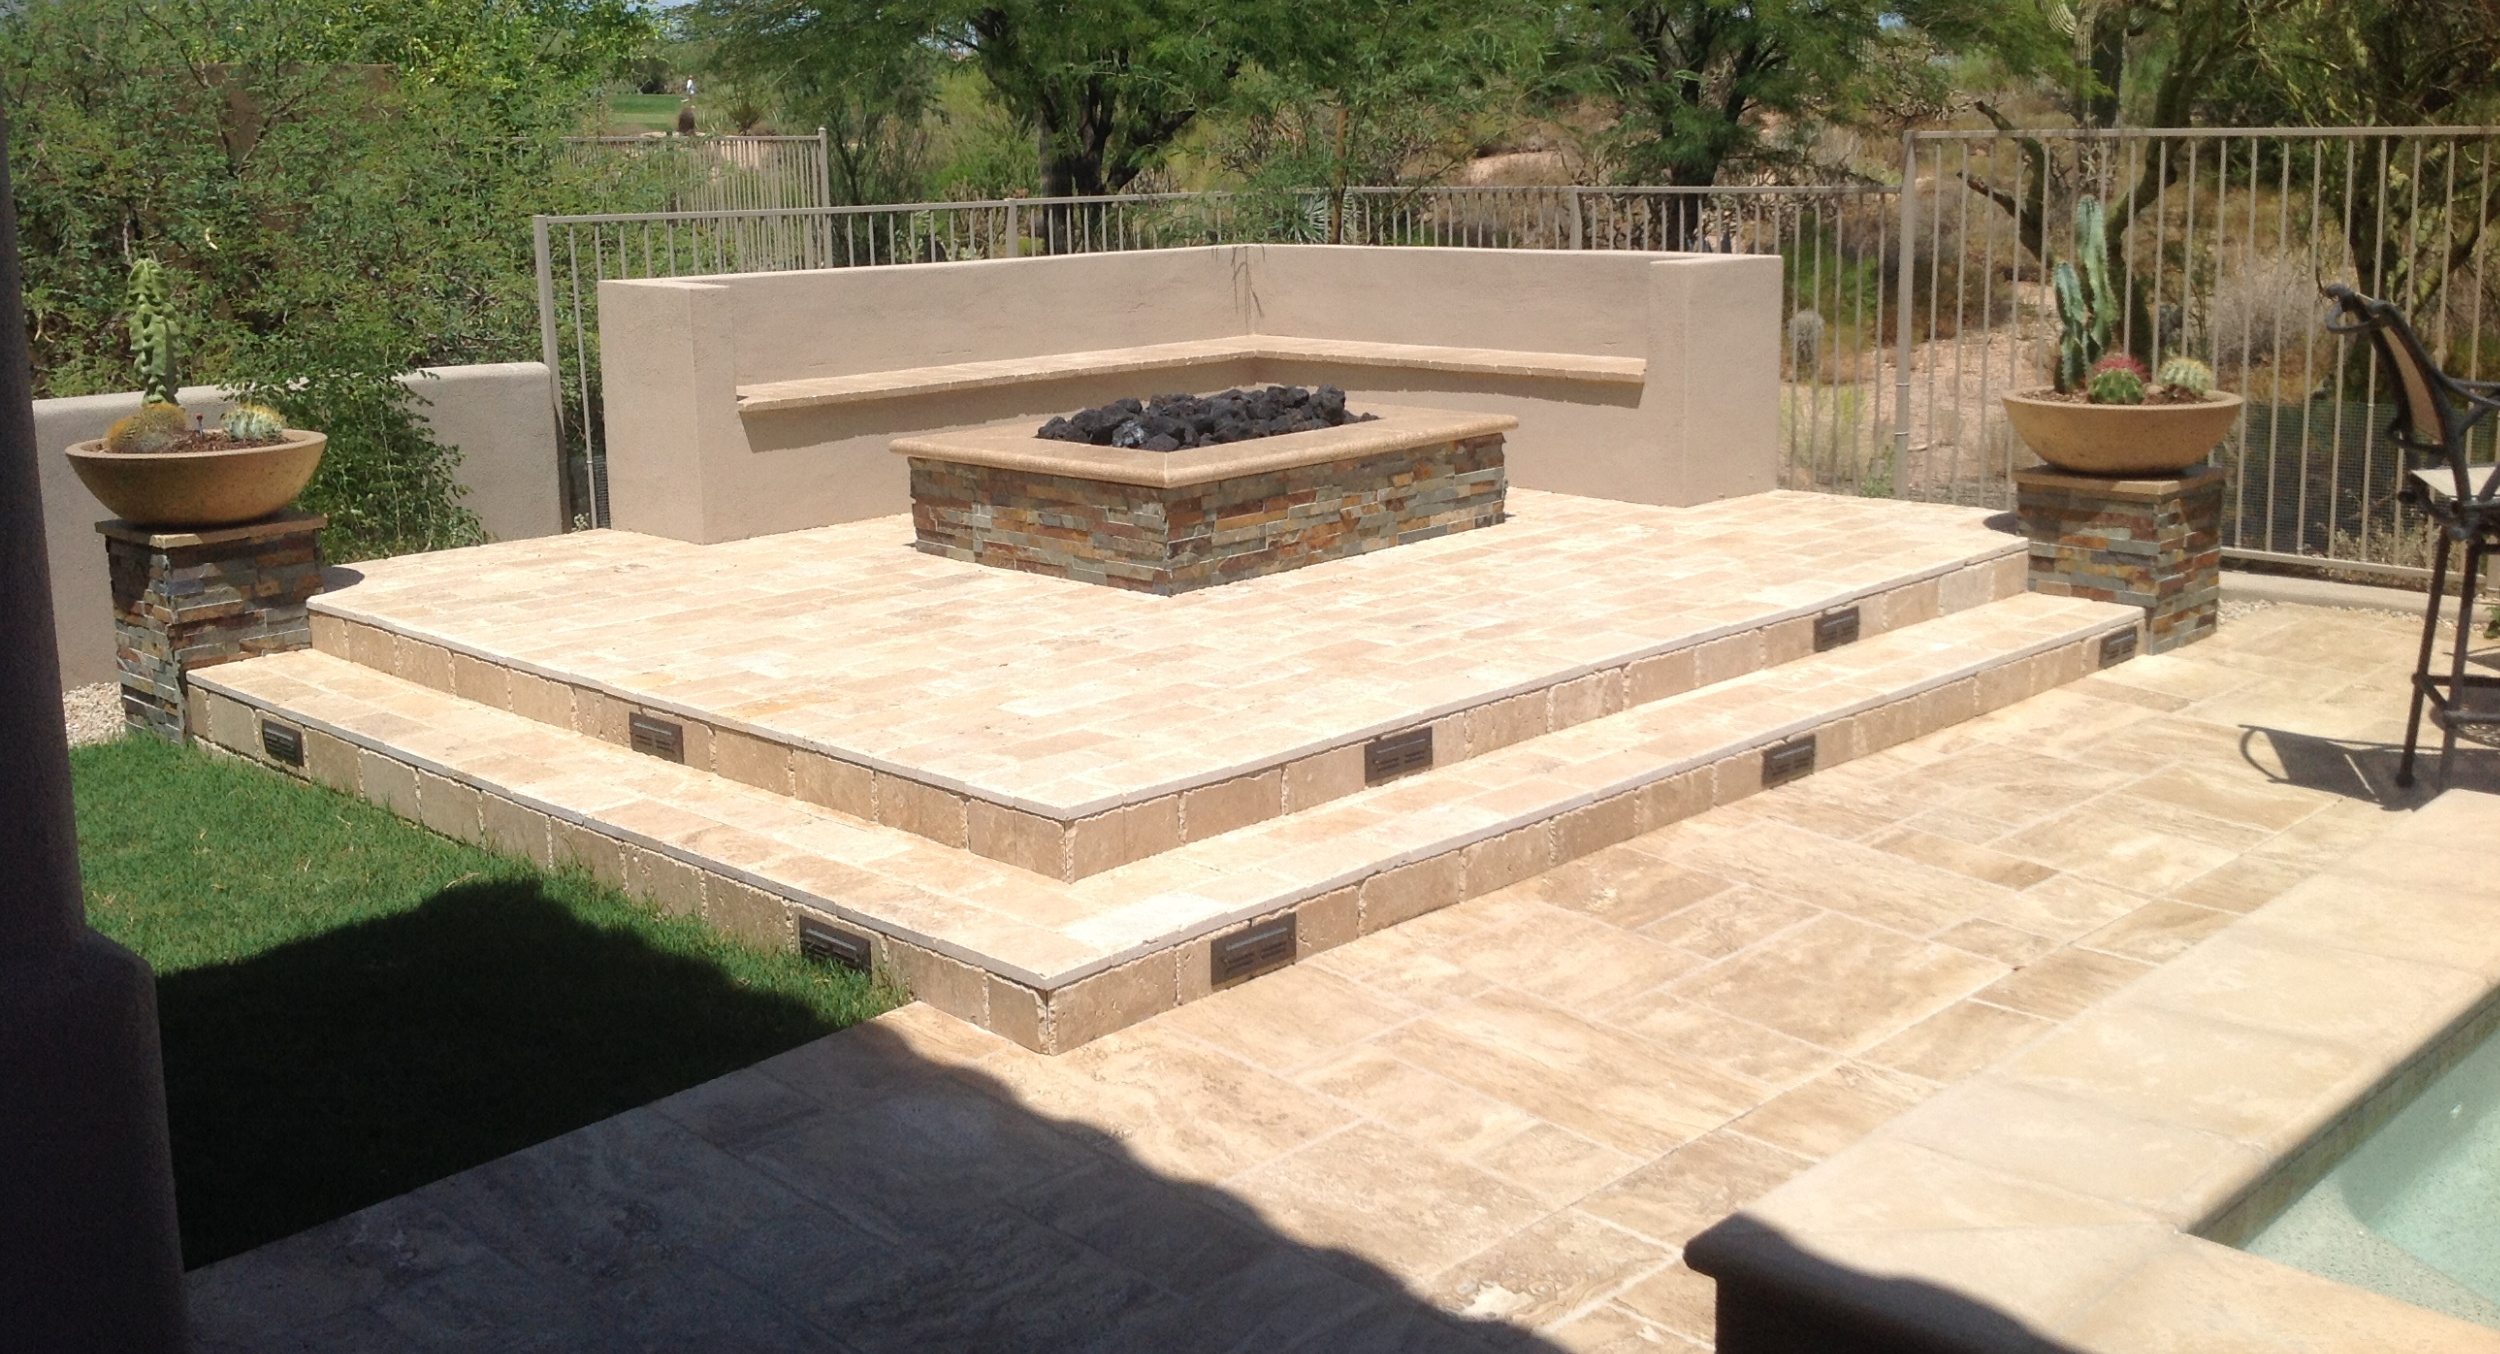 Get lots of aesthetic impact from raised gas fire pits. Scottsdale patio upgrades with travertine and split-face stone aren't something you want to hide.